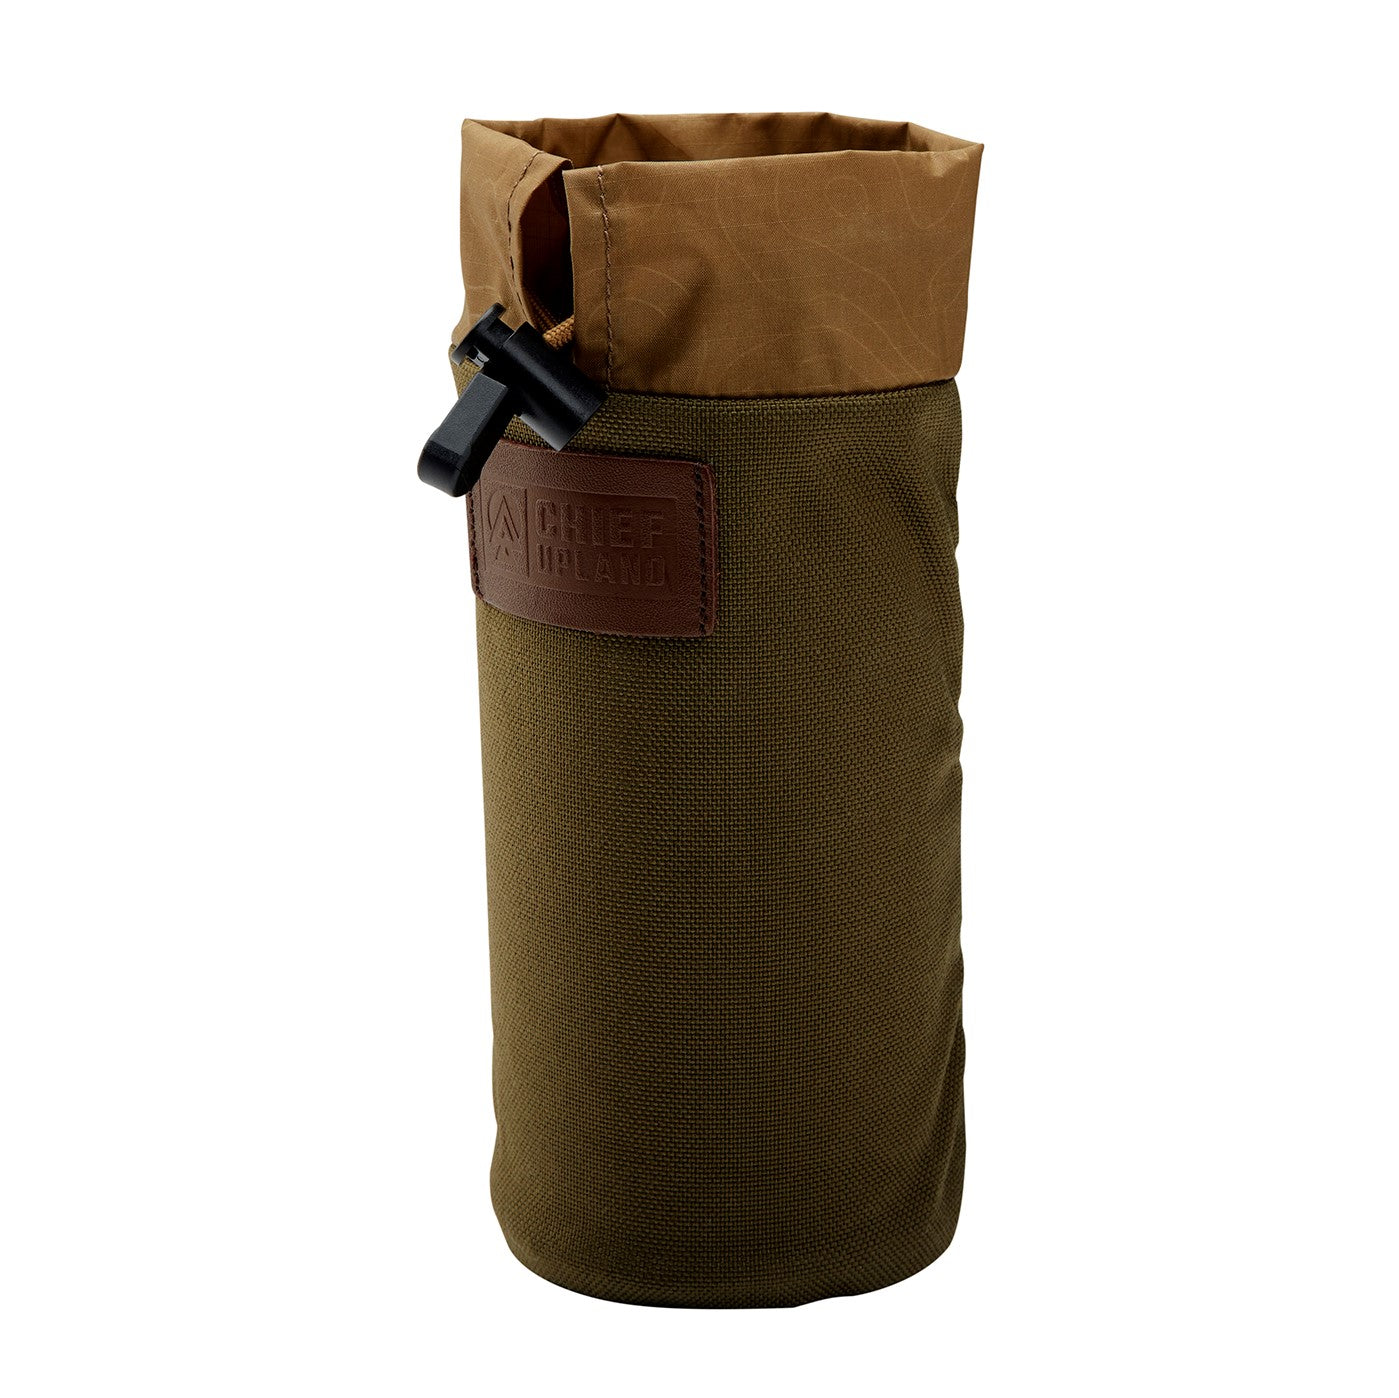 Water Bottle Pouch - Earth Tone